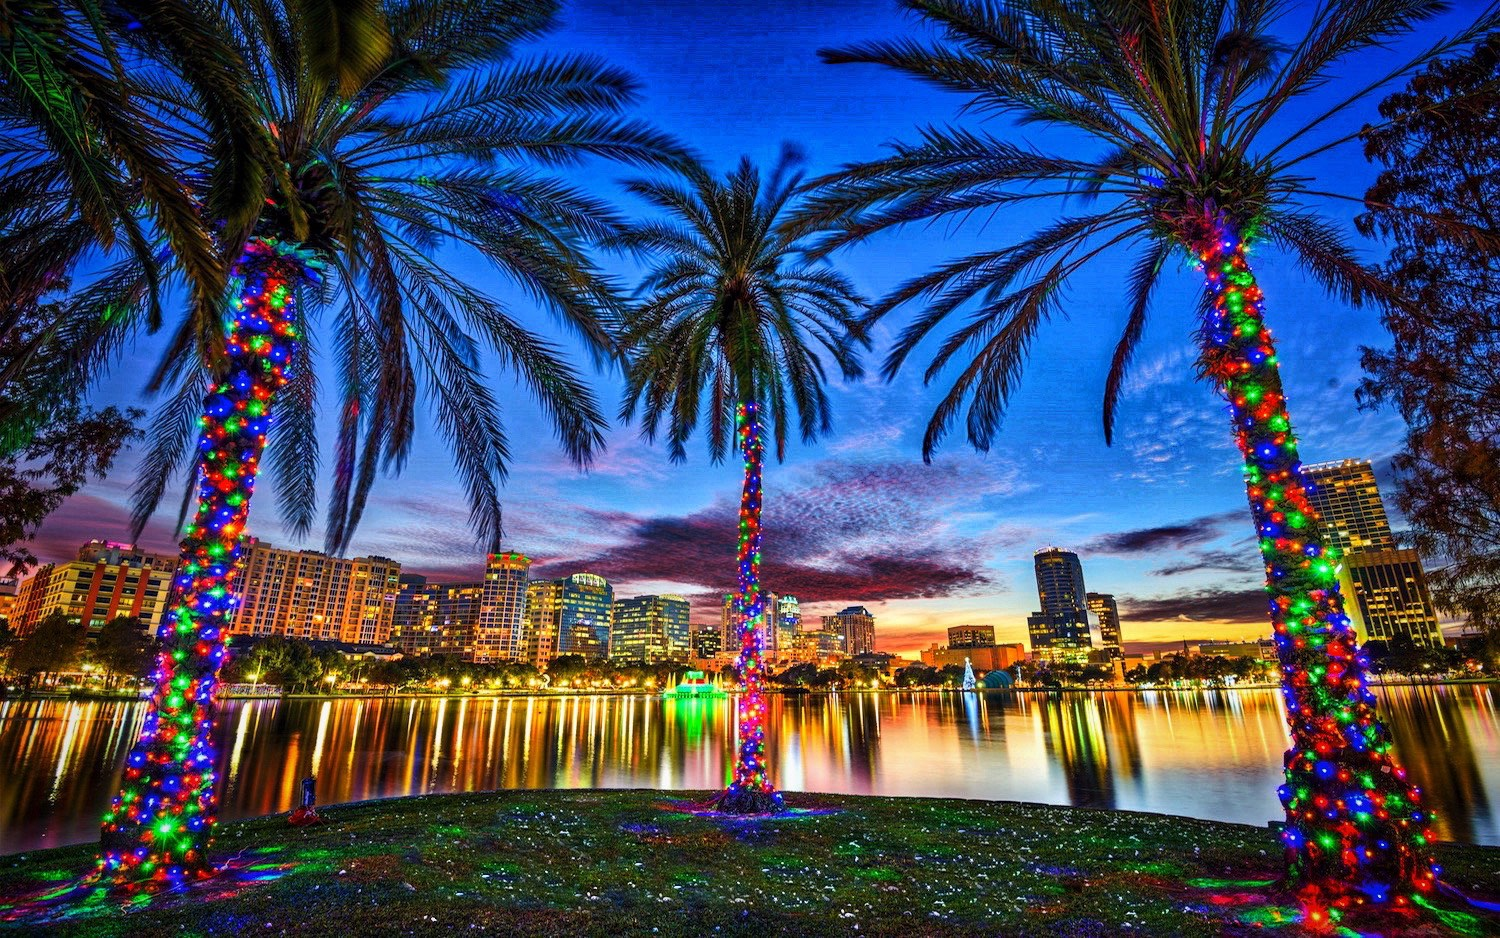 Orlando City Beautiful ShareOrlando